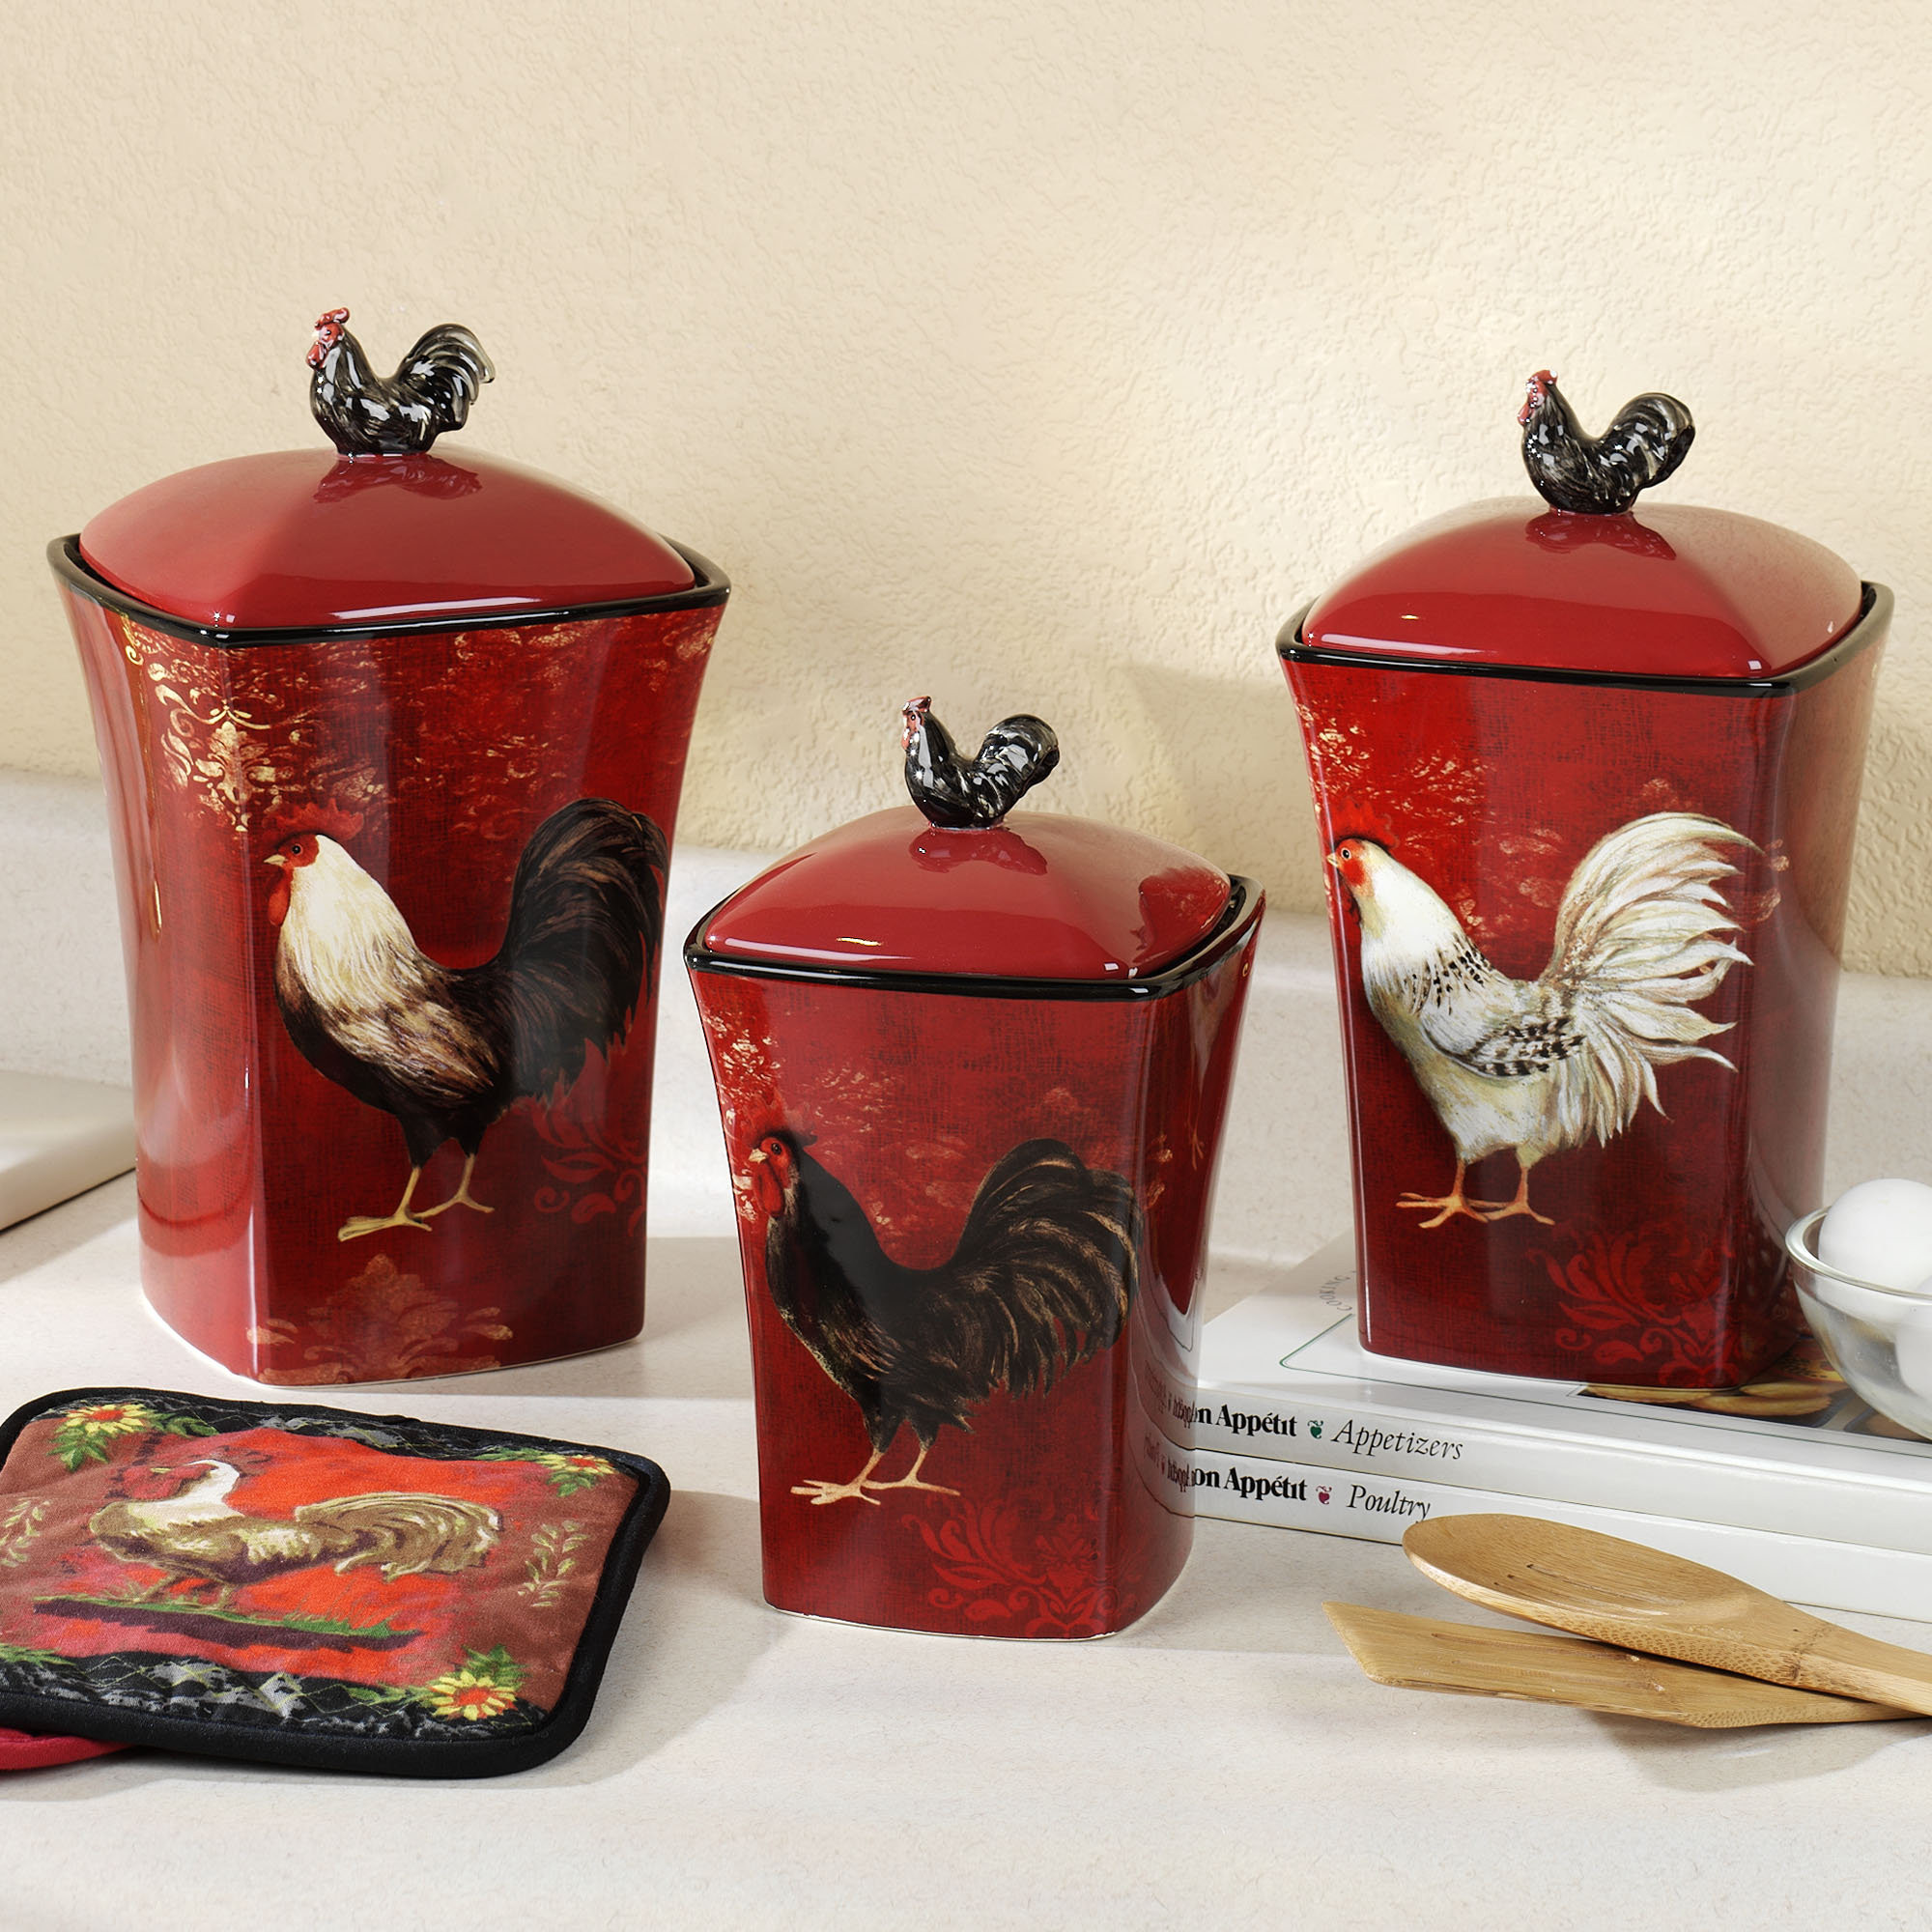 Best ideas about Rooster Kitchen Decor . Save or Pin Cheap Rooster Kitchen Decor Now.